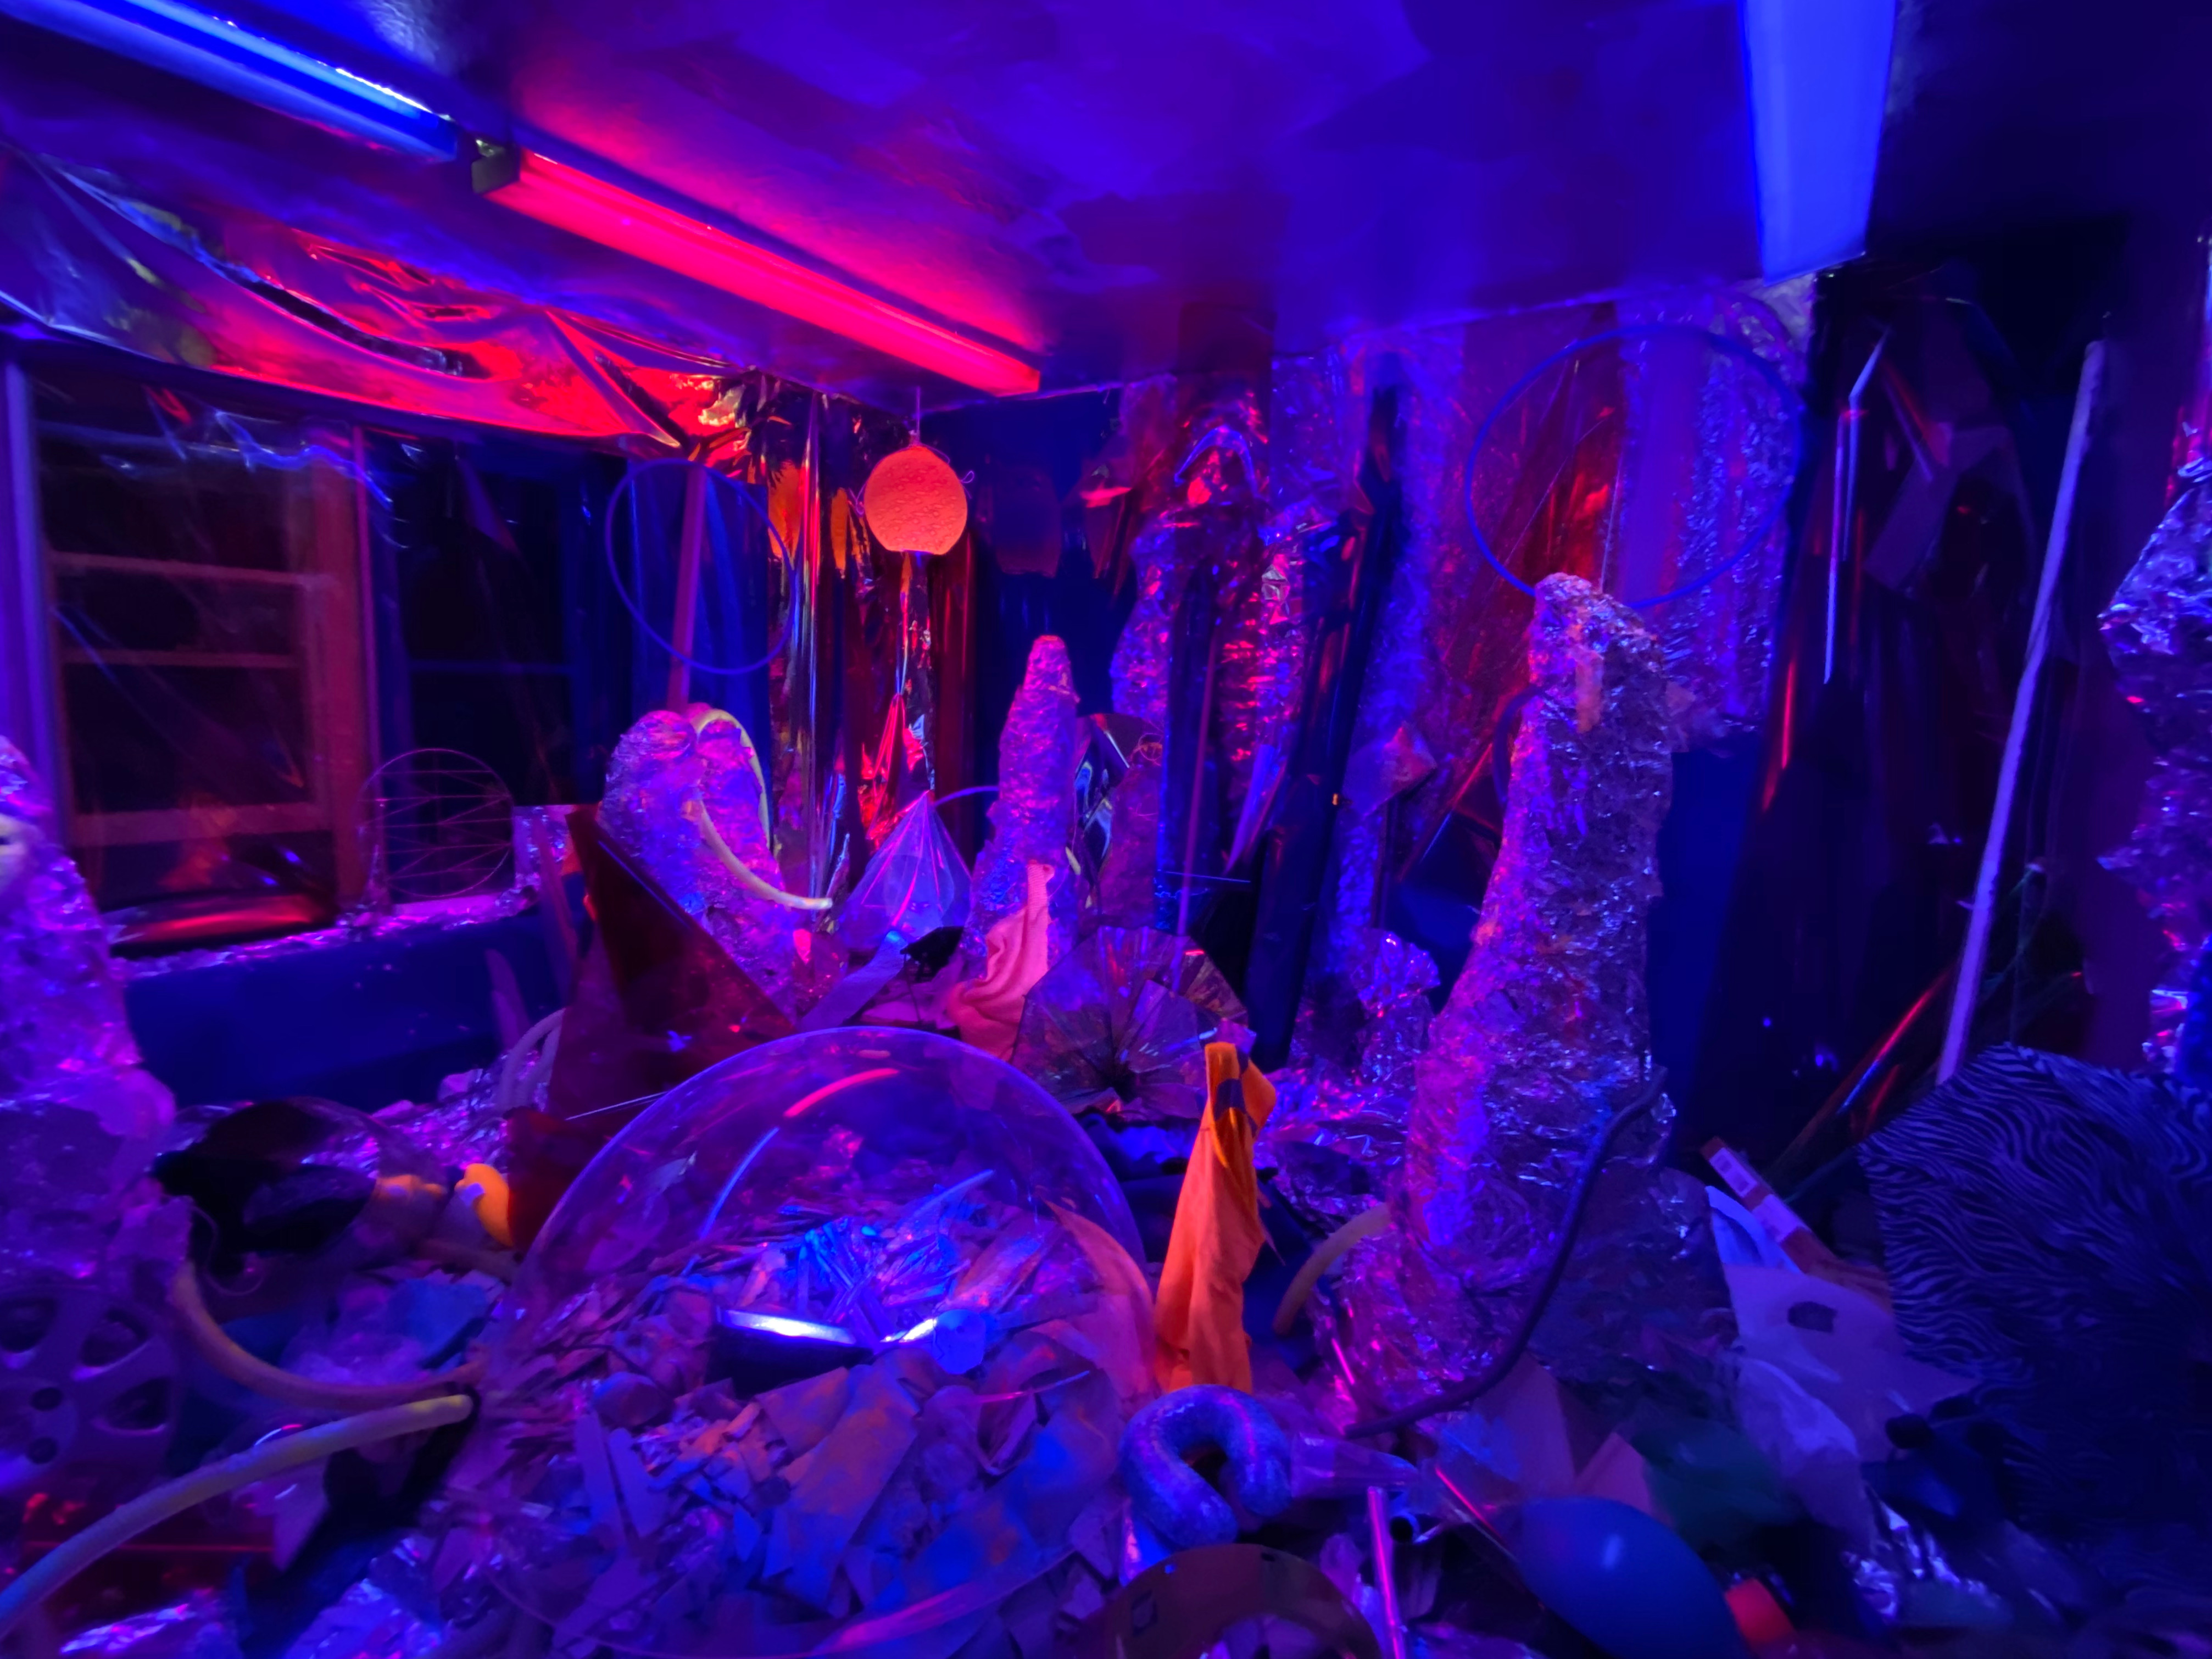 Tinfoil and clear orbs fill the room in a space-esque layout, illuminated by blue and red lights